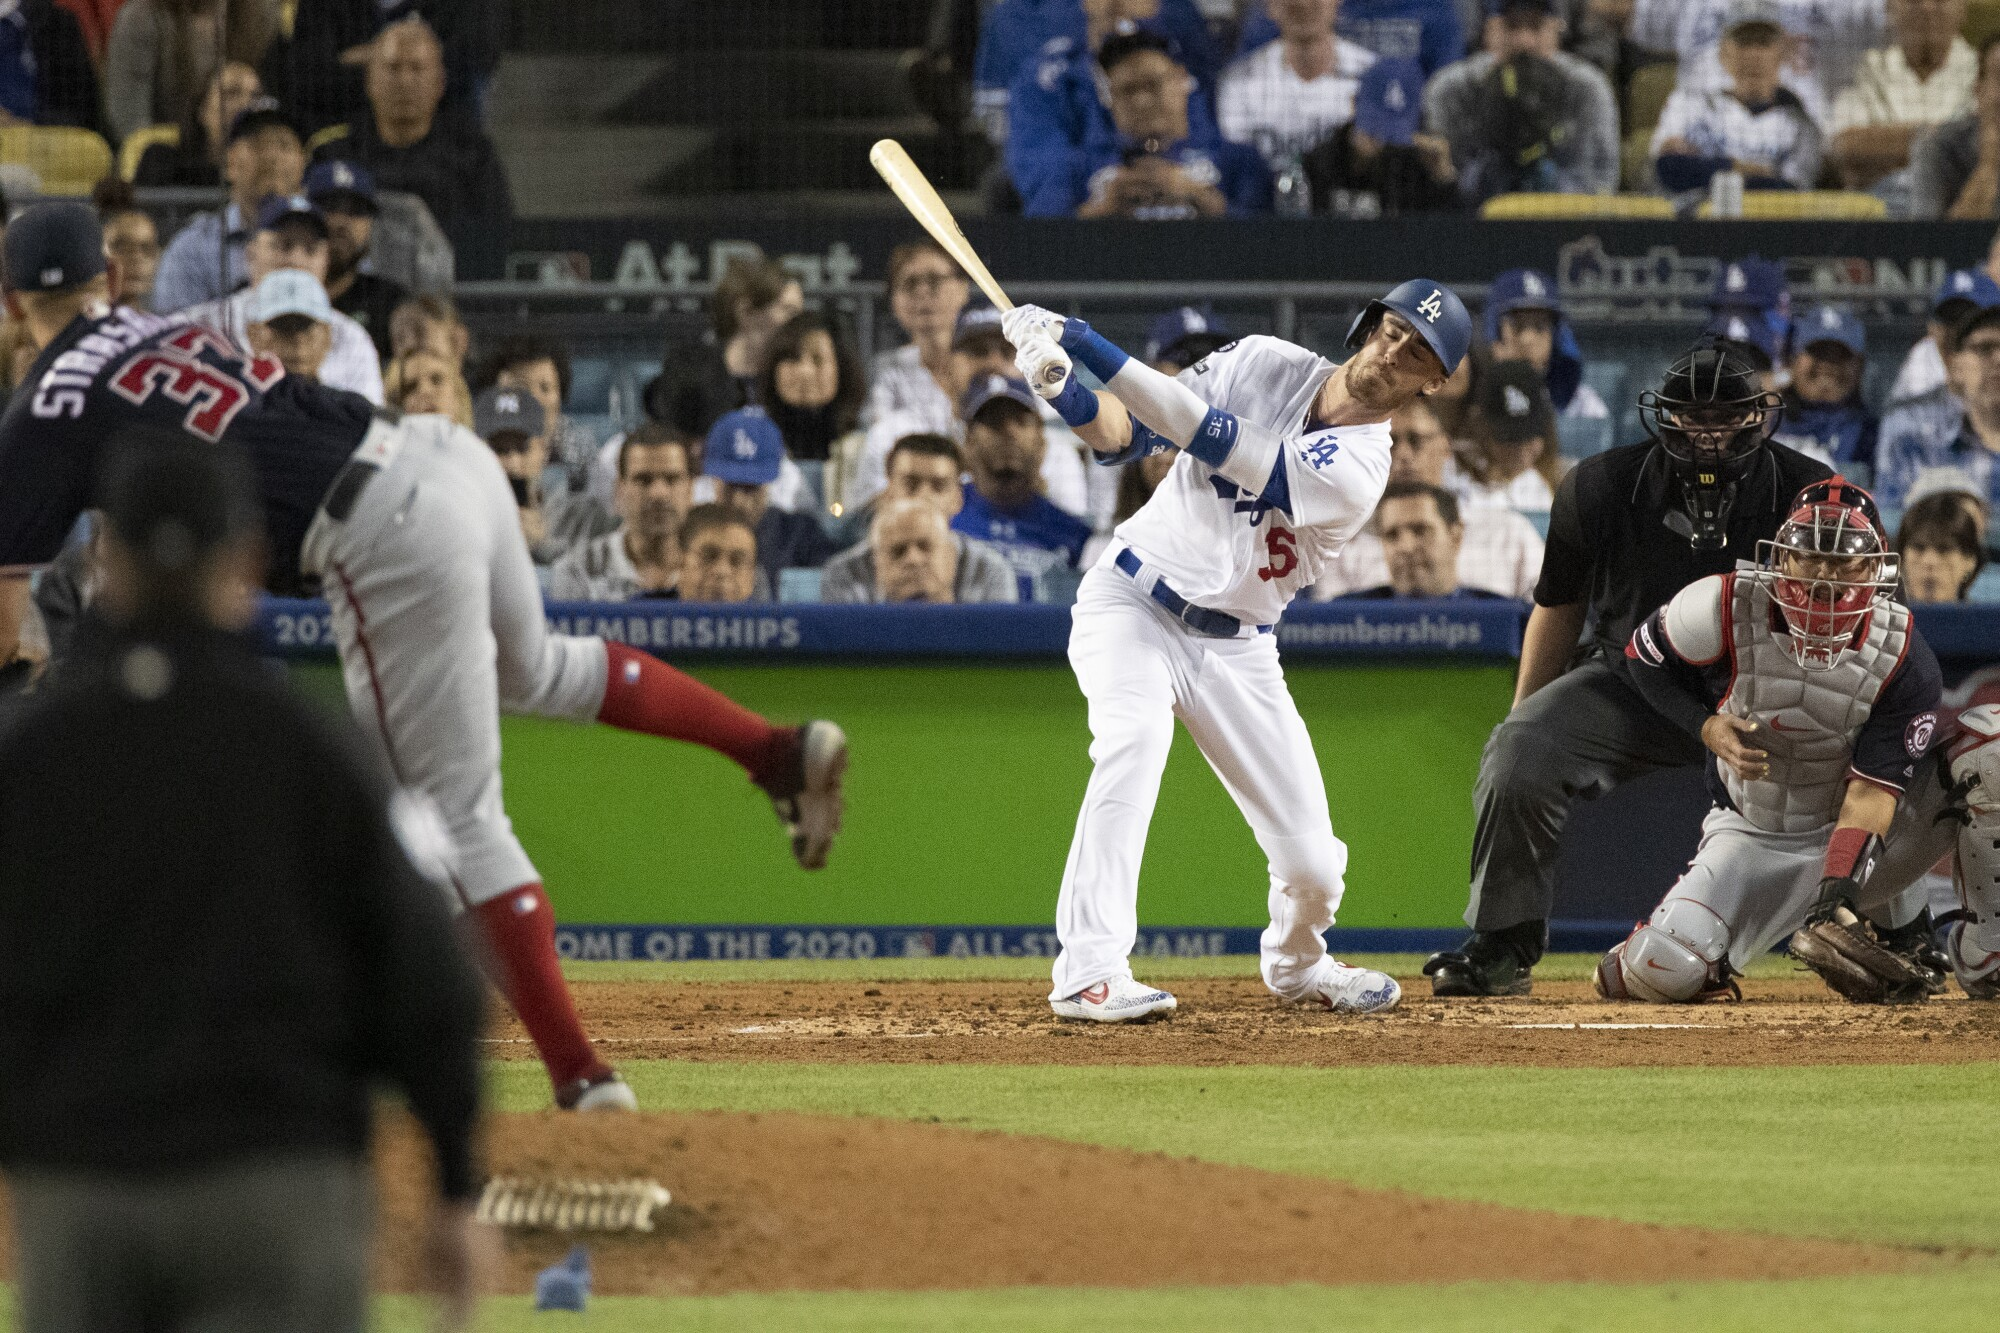 Washington Nationals starting pitcher Stephen Strasburg strikes out Dodgers center fielder Cody Bellinger during the fifth inning of the Dodgers' NLDS Game 2 loss Friday.